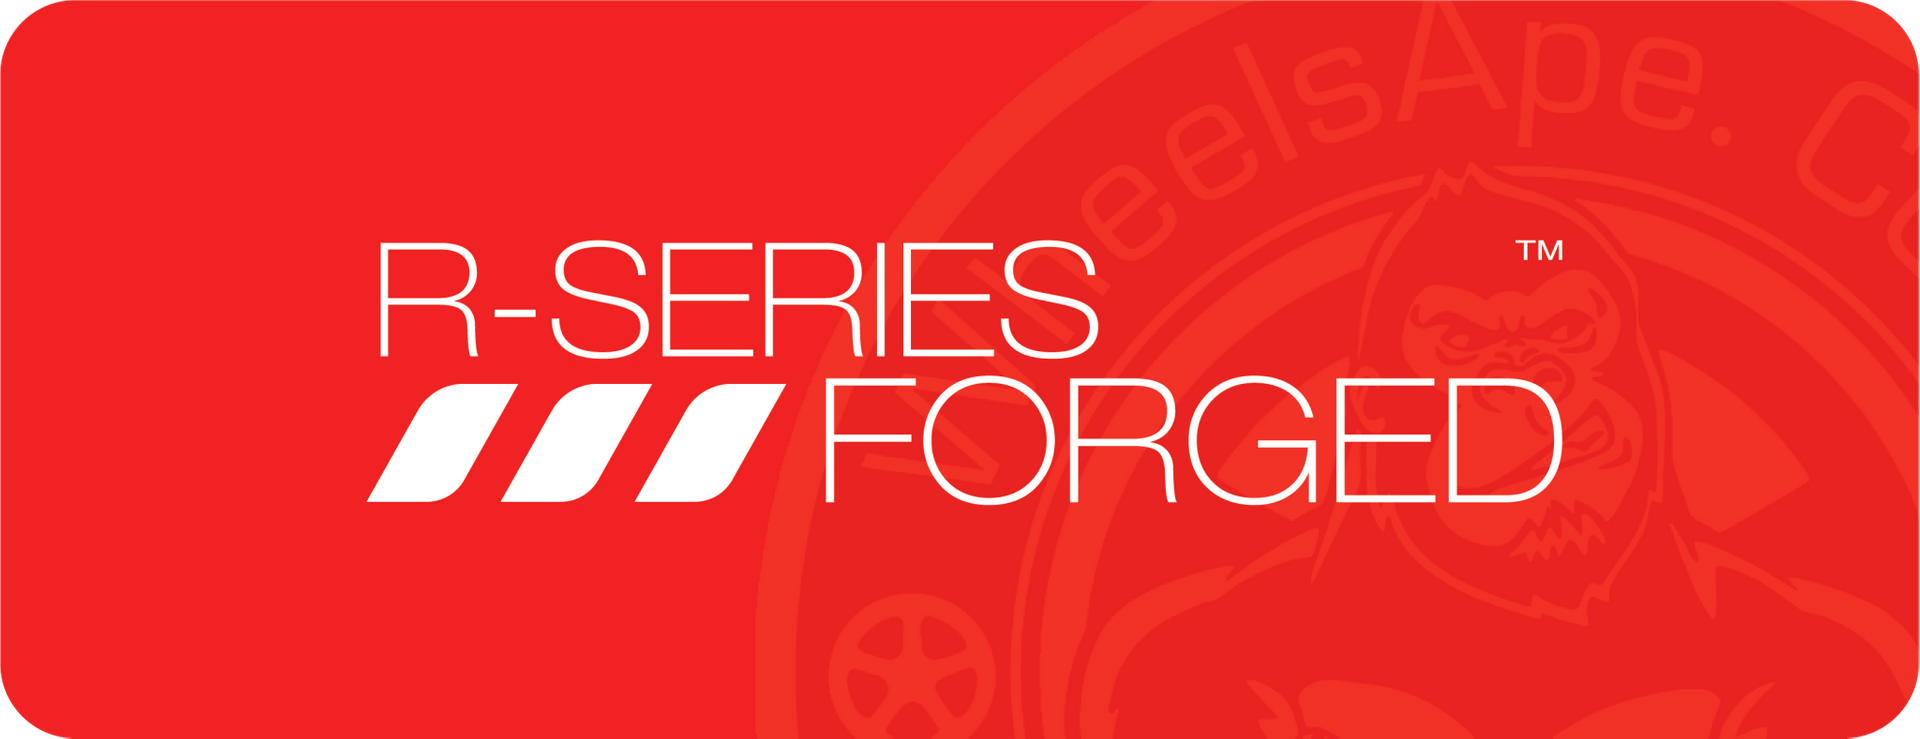 r-series-forged